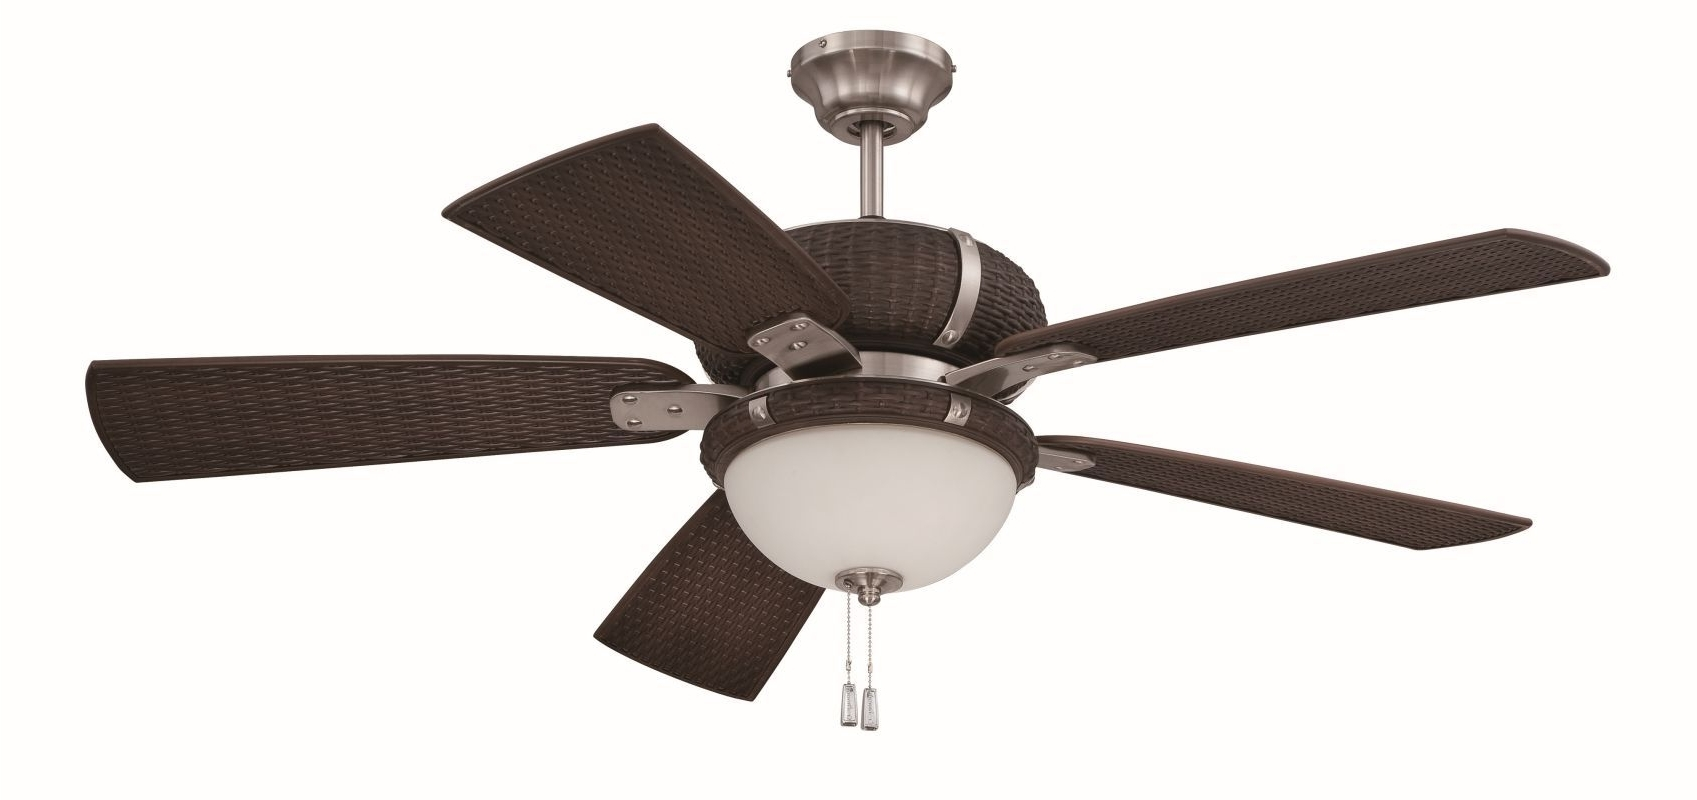 "Wicker Outdoor Ceiling Fans With Lights Regarding Most Popular Craftmade Lap545 La Playa 54"" 5 Blade Outdoor Ceiling Fan – Blades (View 17 of 20)"